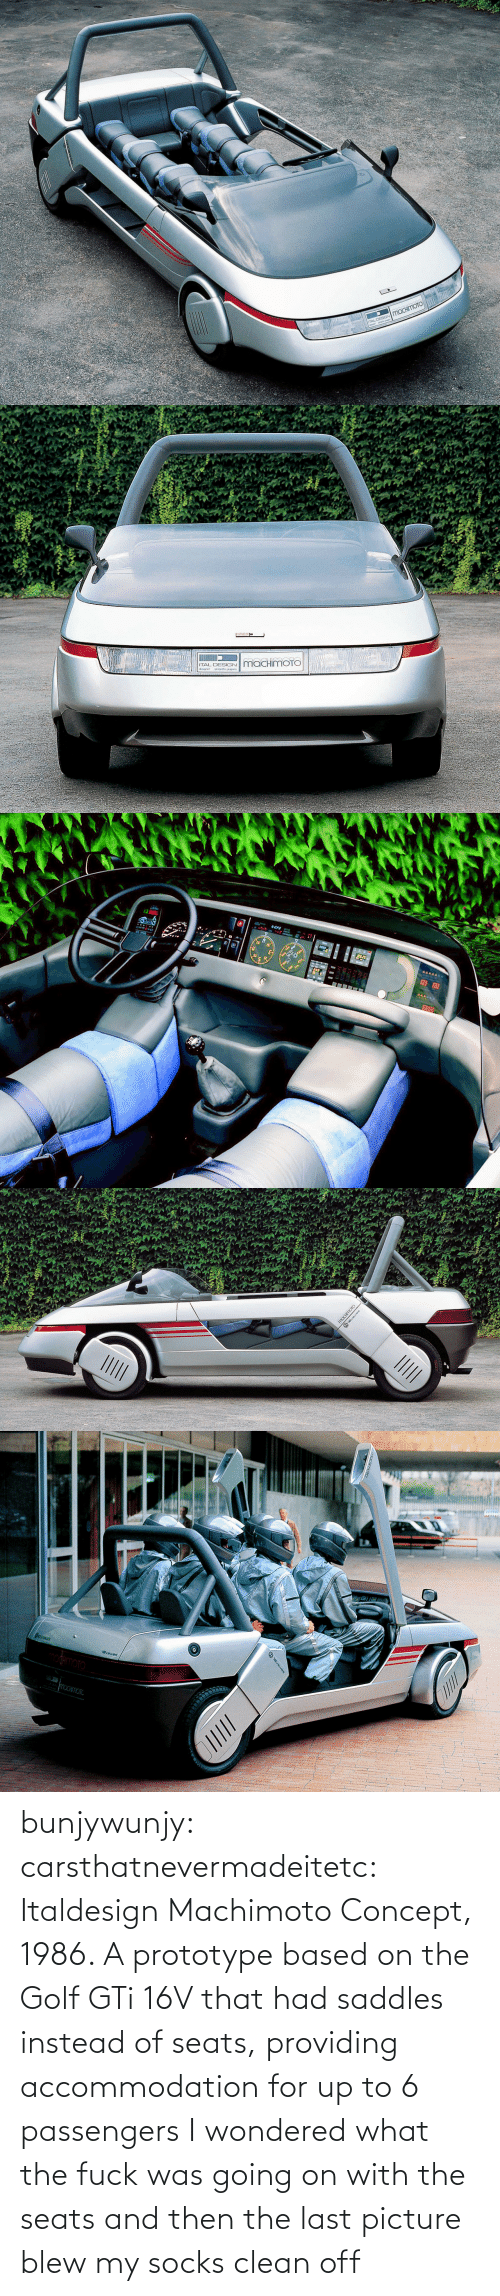 Golf: bunjywunjy:  carsthatnevermadeitetc:  Italdesign Machimoto Concept, 1986. A prototype based on the Golf GTi 16V that had saddles instead of seats, providing accommodation for up to 6 passengers   I wondered what the fuck was going on with the seats and then the last picture blew my socks clean off